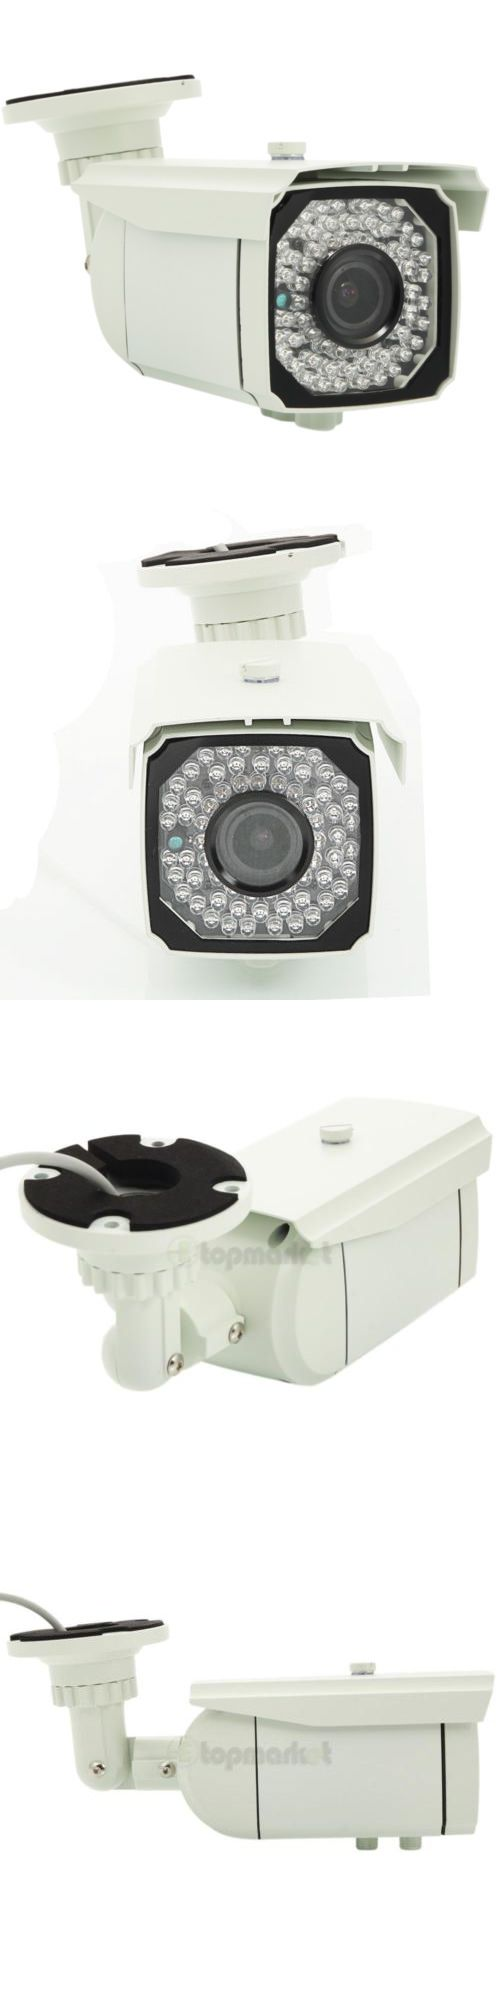 Security Cameras: 1300Tvl Hd Sony Cmos 2.8-12Mm Varifocal Outdoor Home Cctv Security Camera Ir-Cut BUY IT NOW ONLY: $45.0